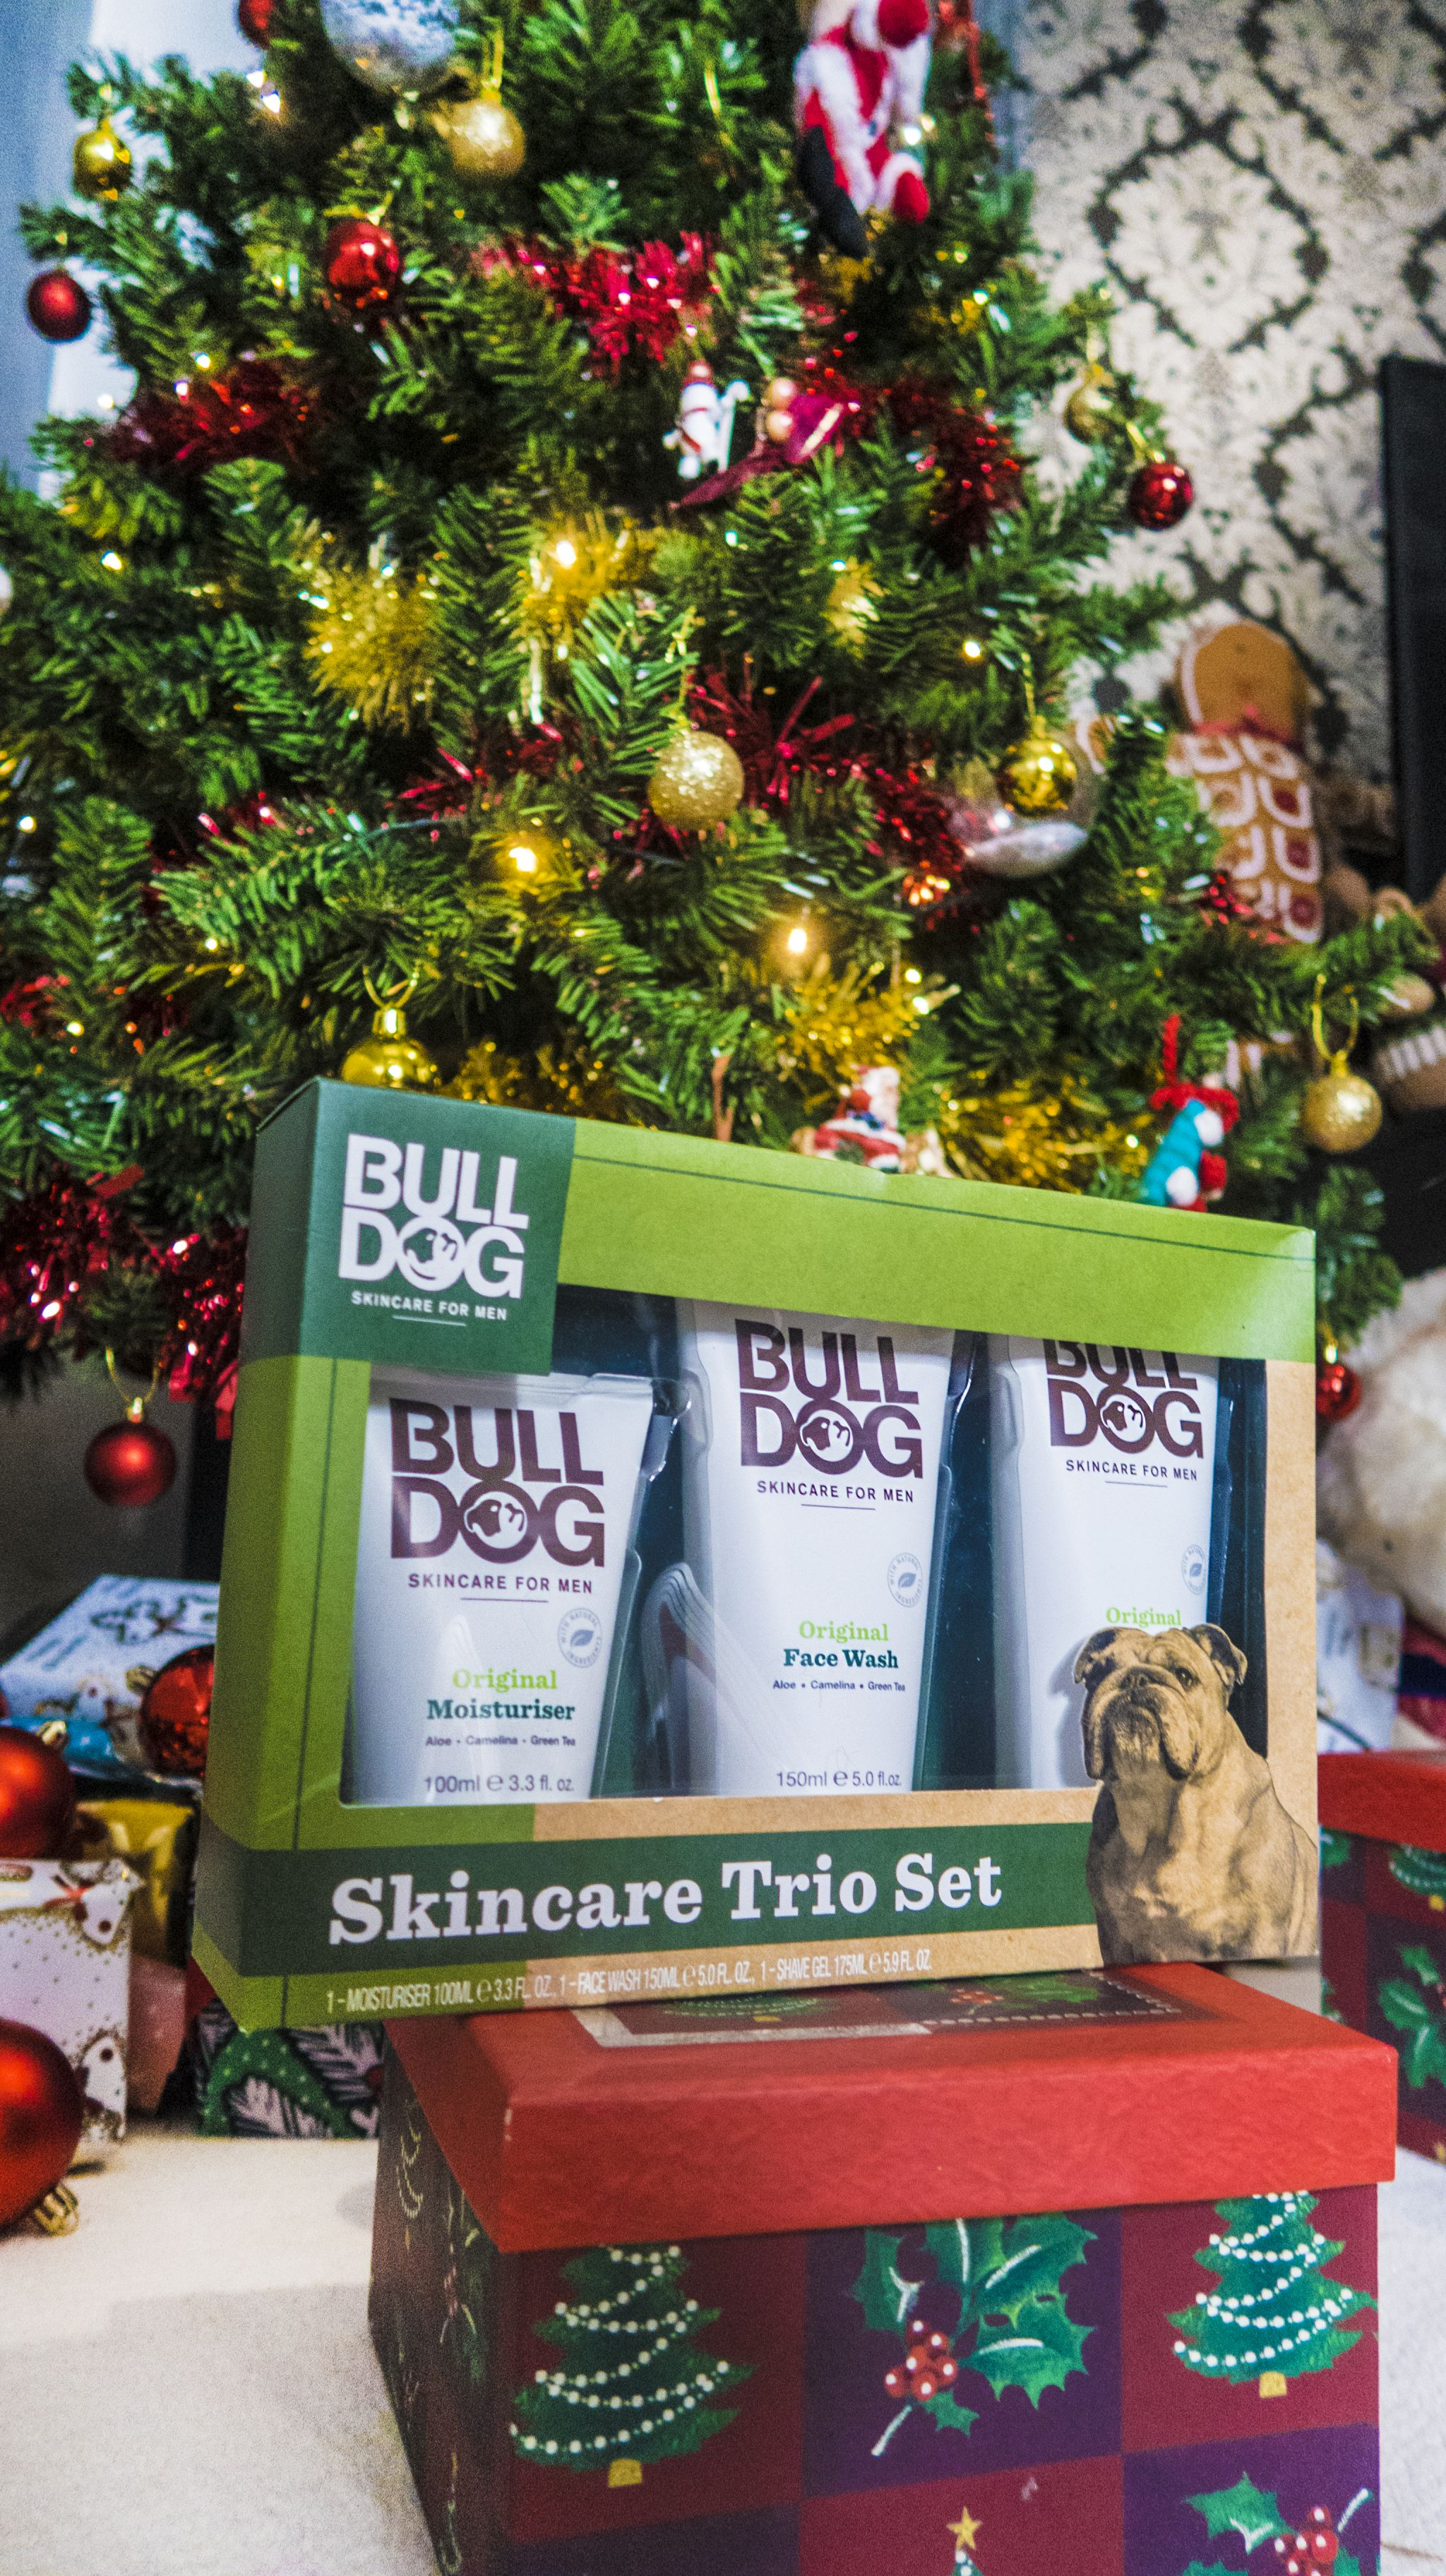 bulldog skincare trio set